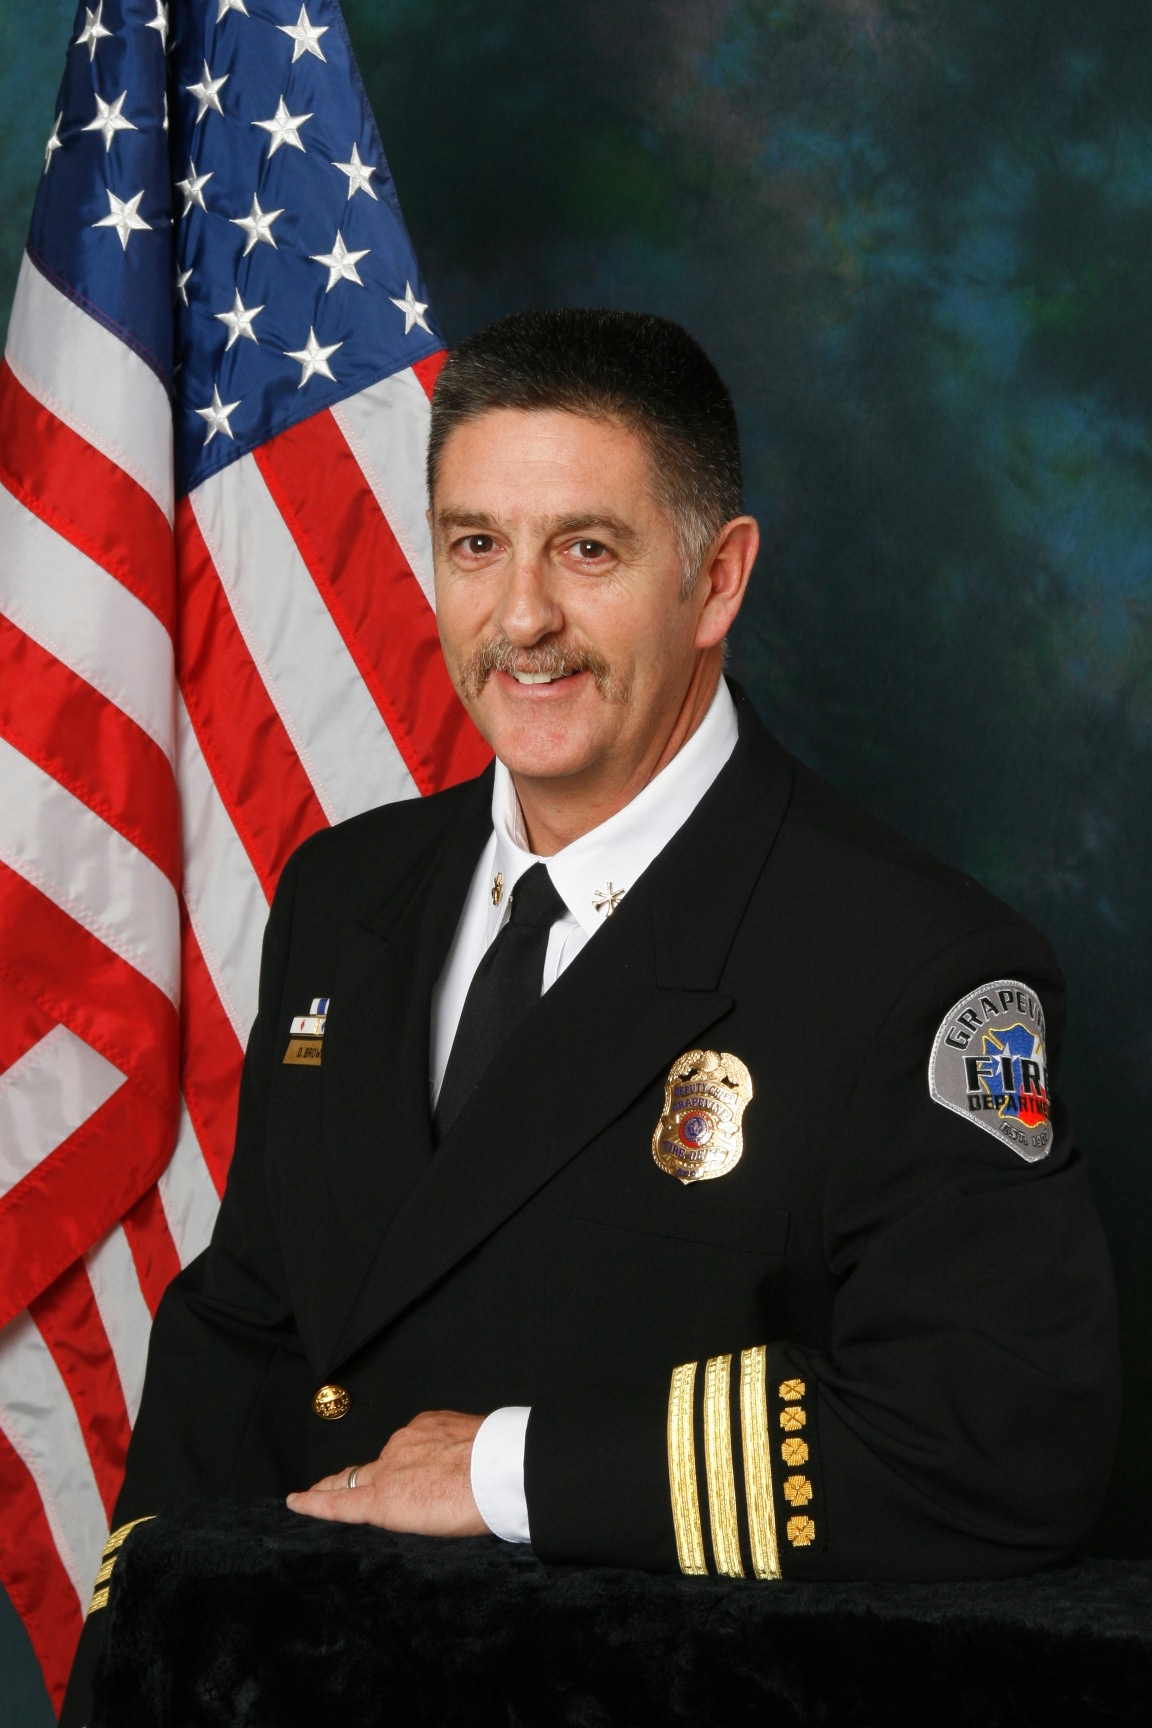 Photo of Deputy Chief Brown